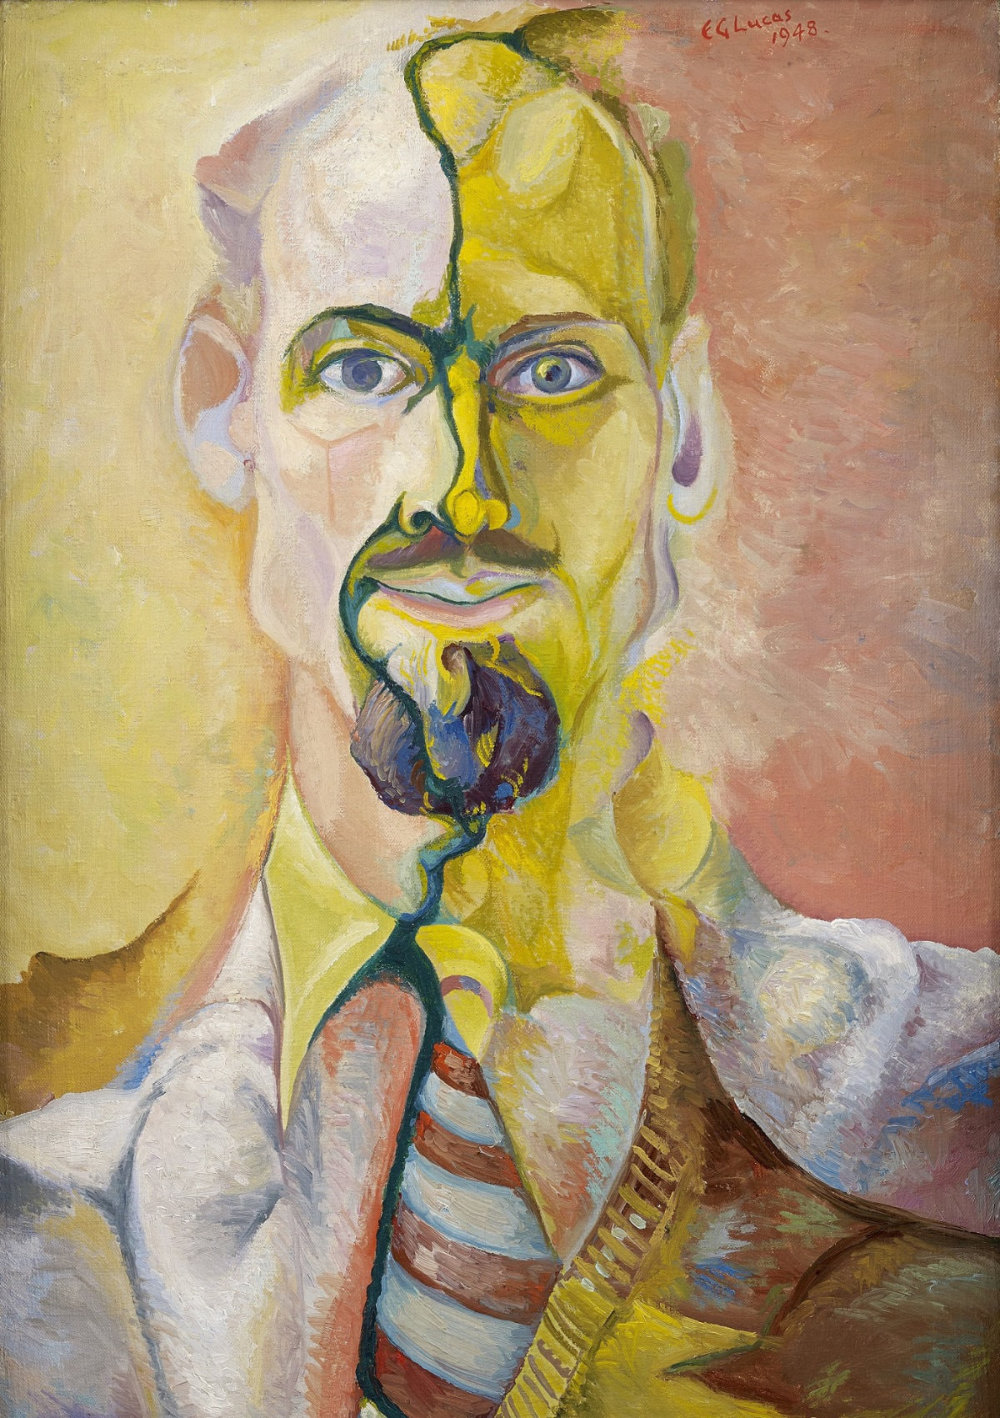 Edwin G. Lucas, Self-Portrait, 1948, Lucas Family Collection, copyright the artist's estate (Photo by John McKenzie), art exhibitions in August